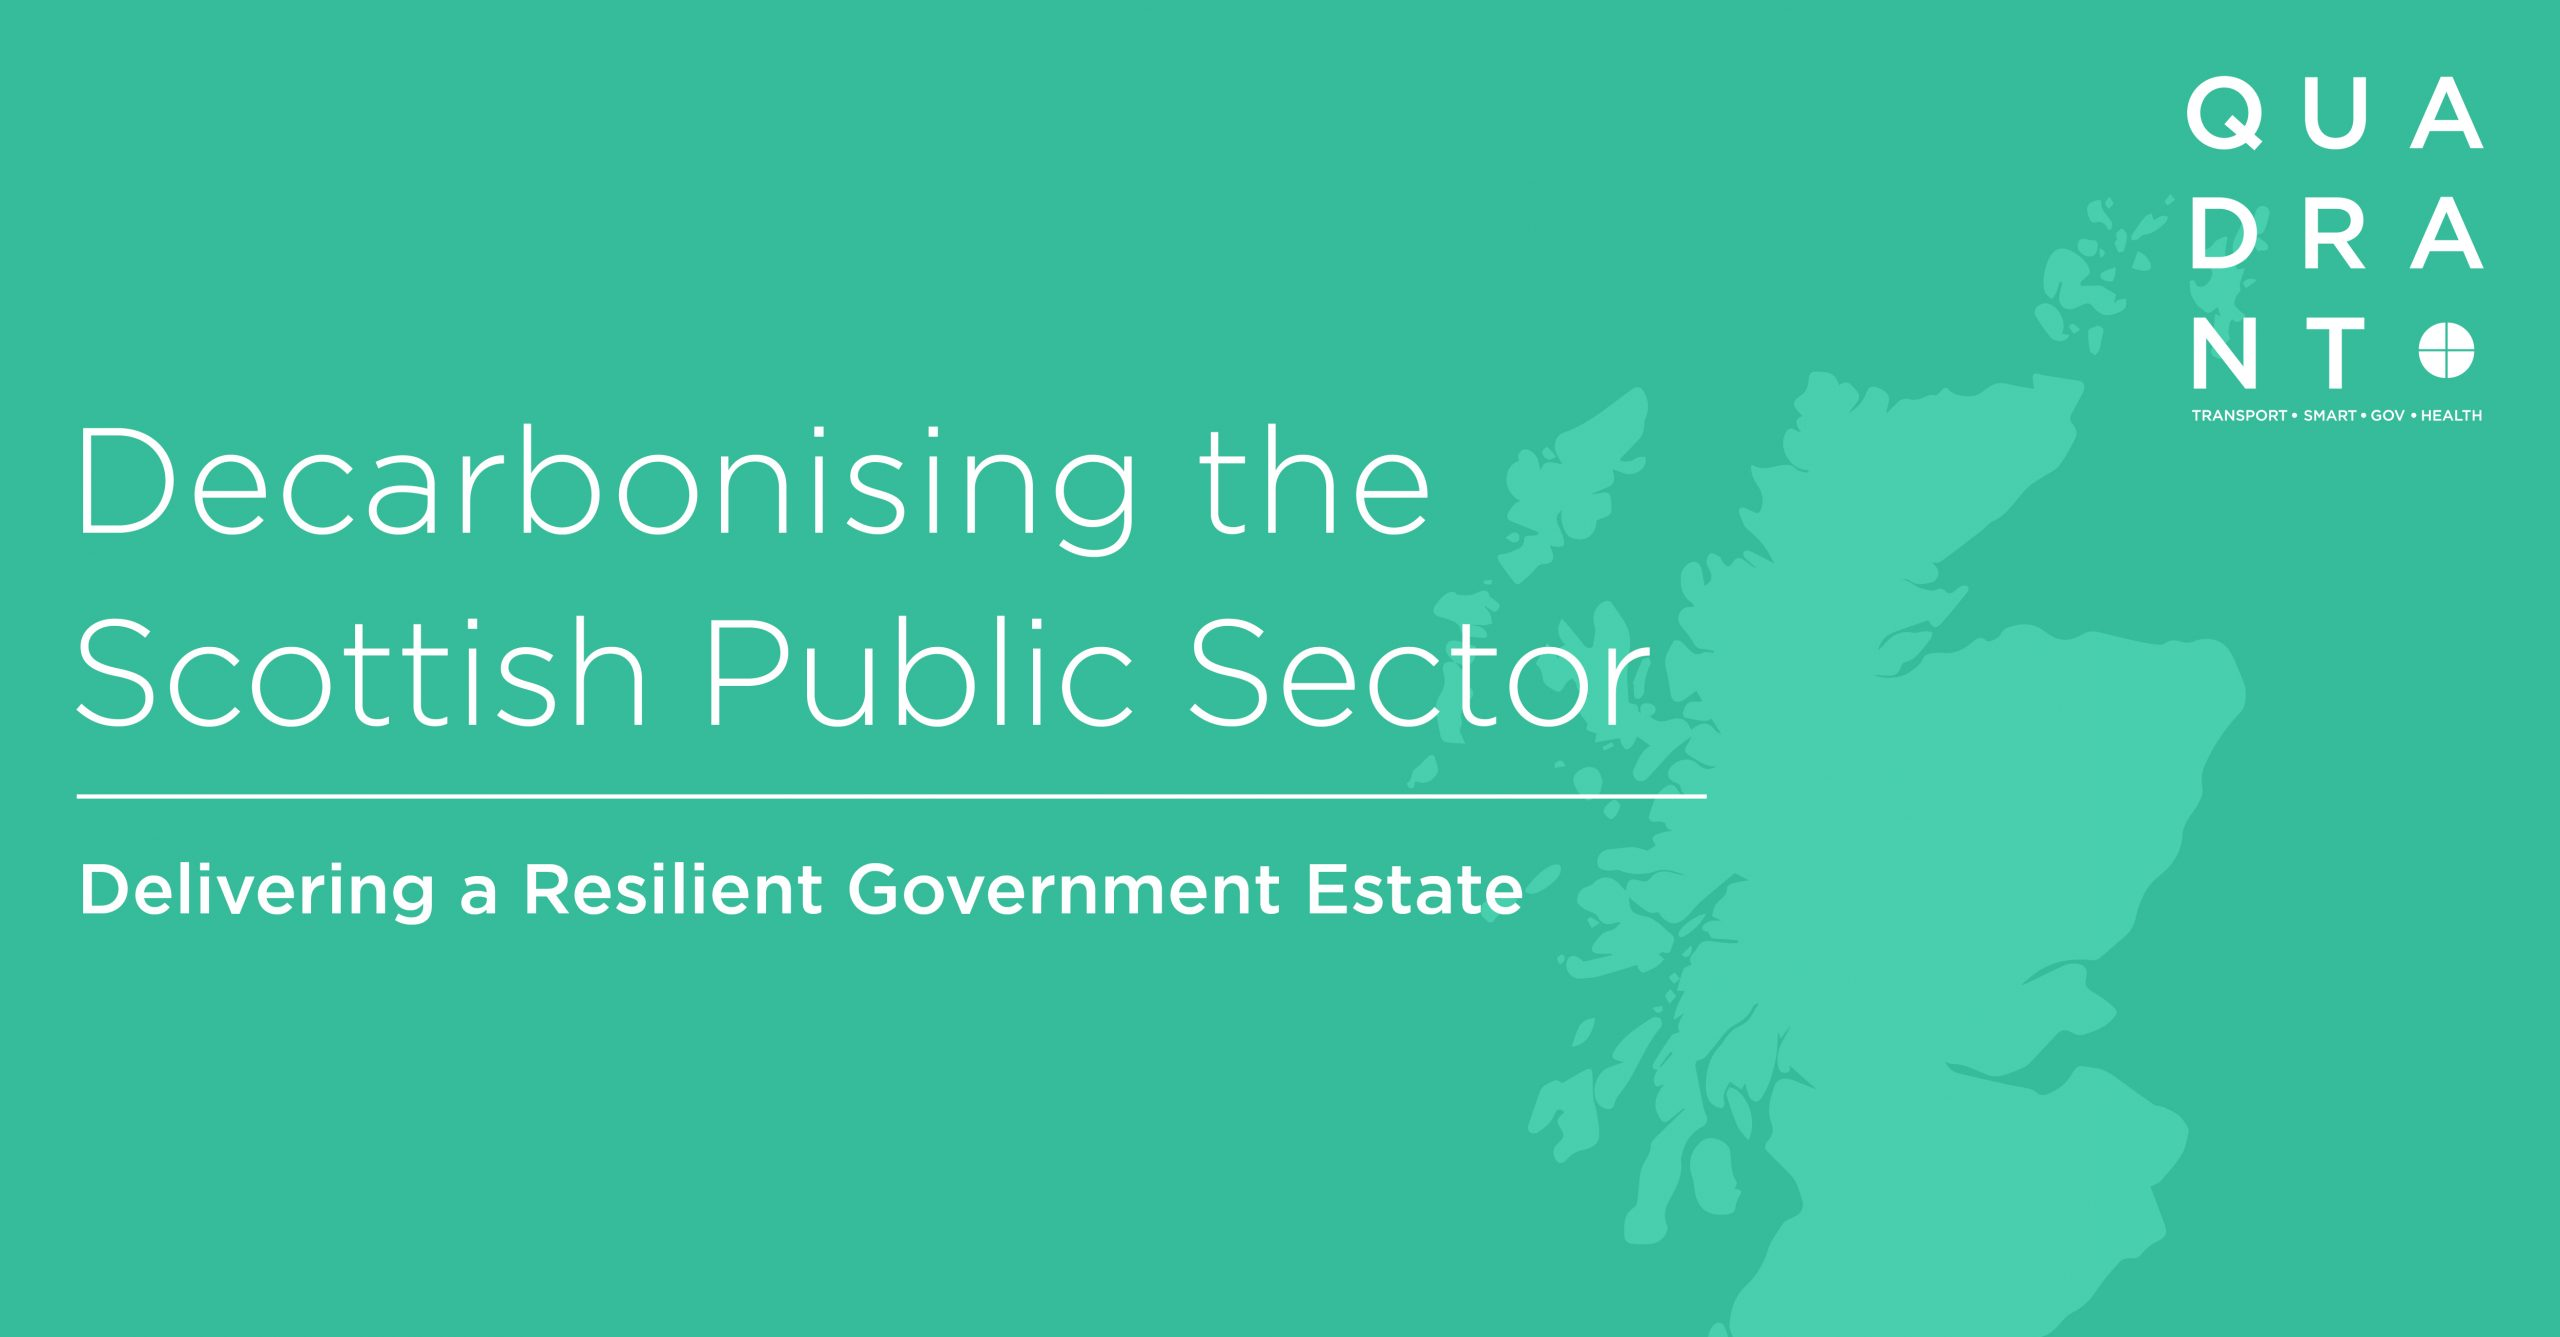 Delivering a Resilient Government Estate